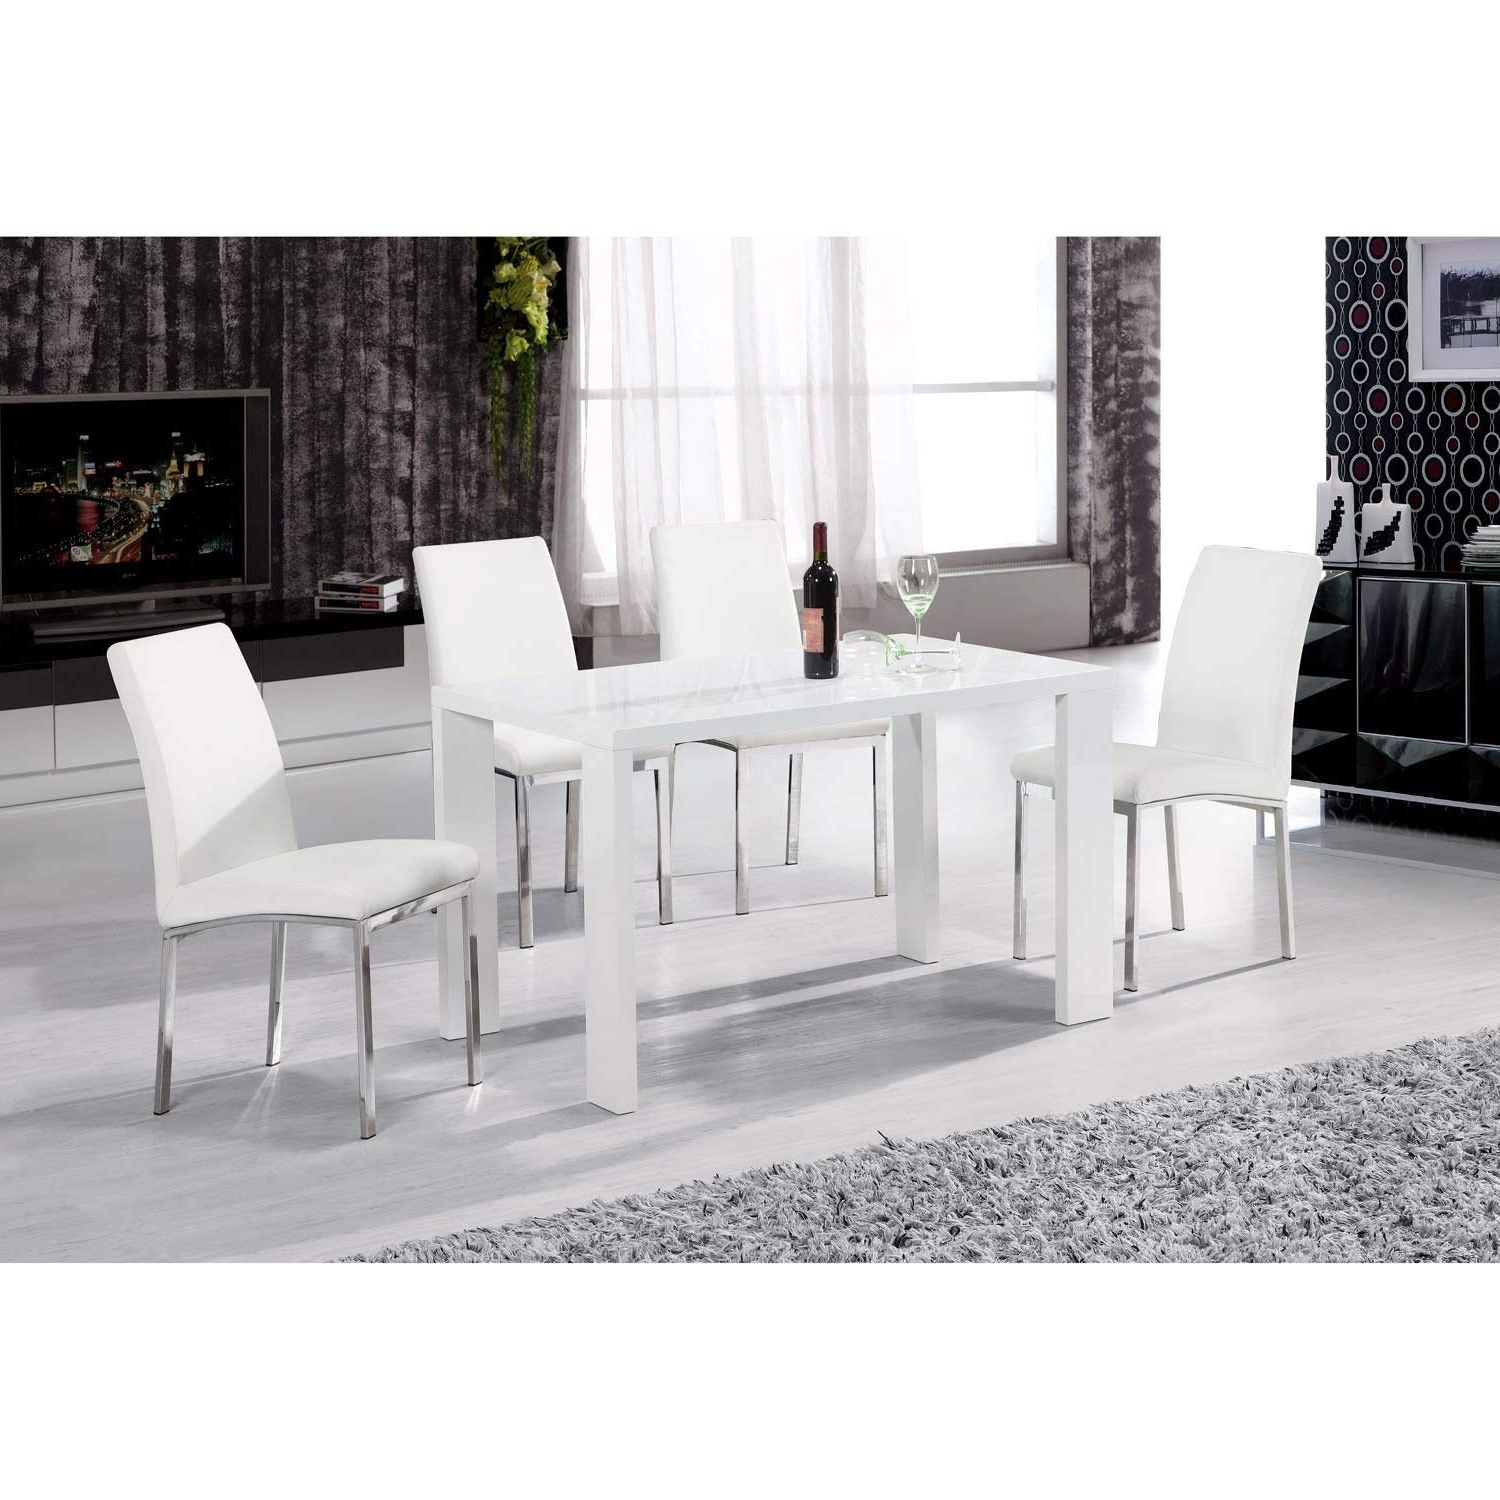 Heartlands Peru White High Gloss 130Cm Dining Table In Wood pertaining to Most Up-to-Date White High Gloss Dining Tables And Chairs